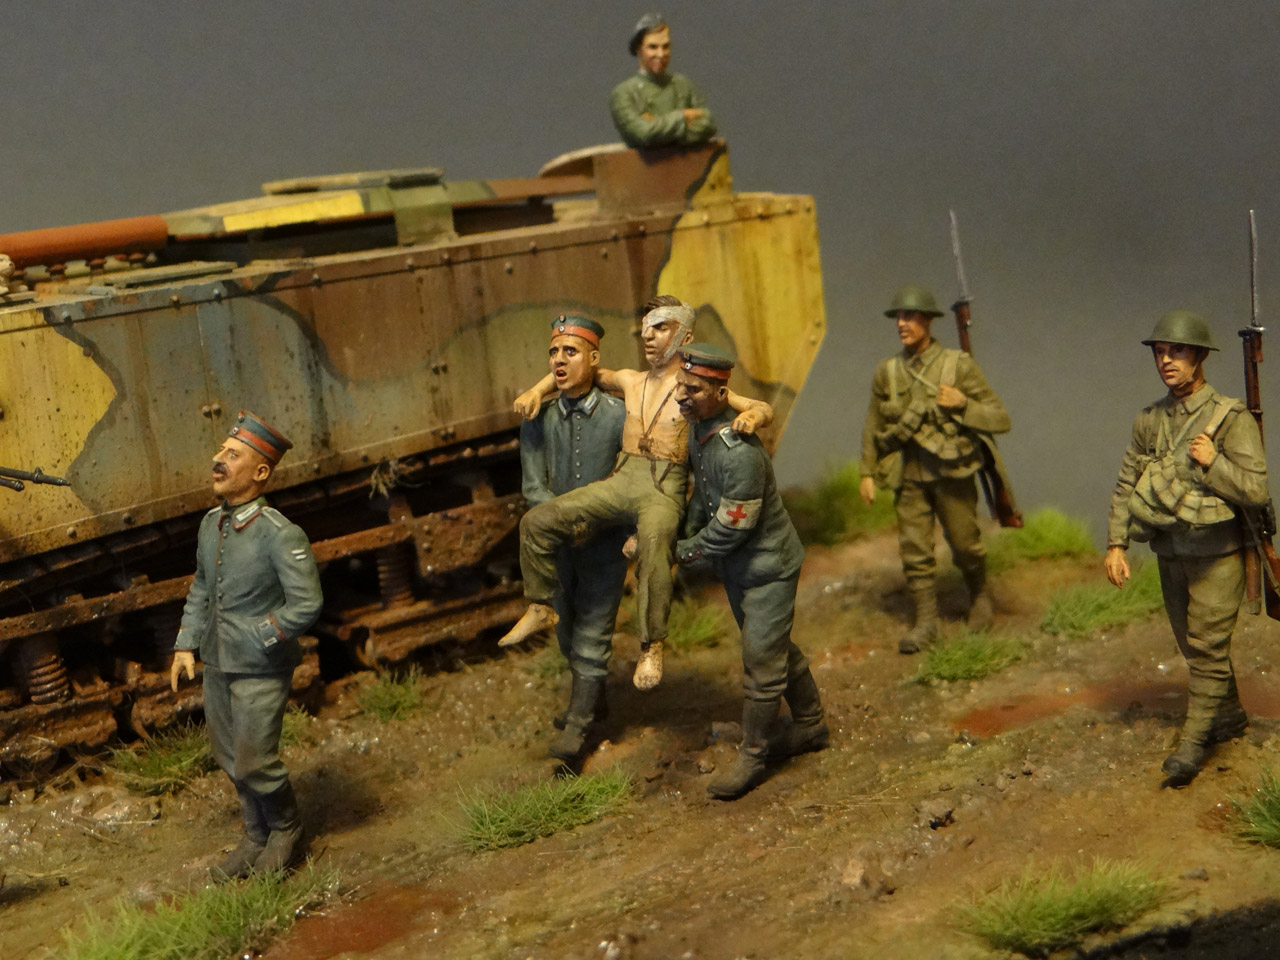 Dioramas and Vignettes: Victors and losers, photo #7